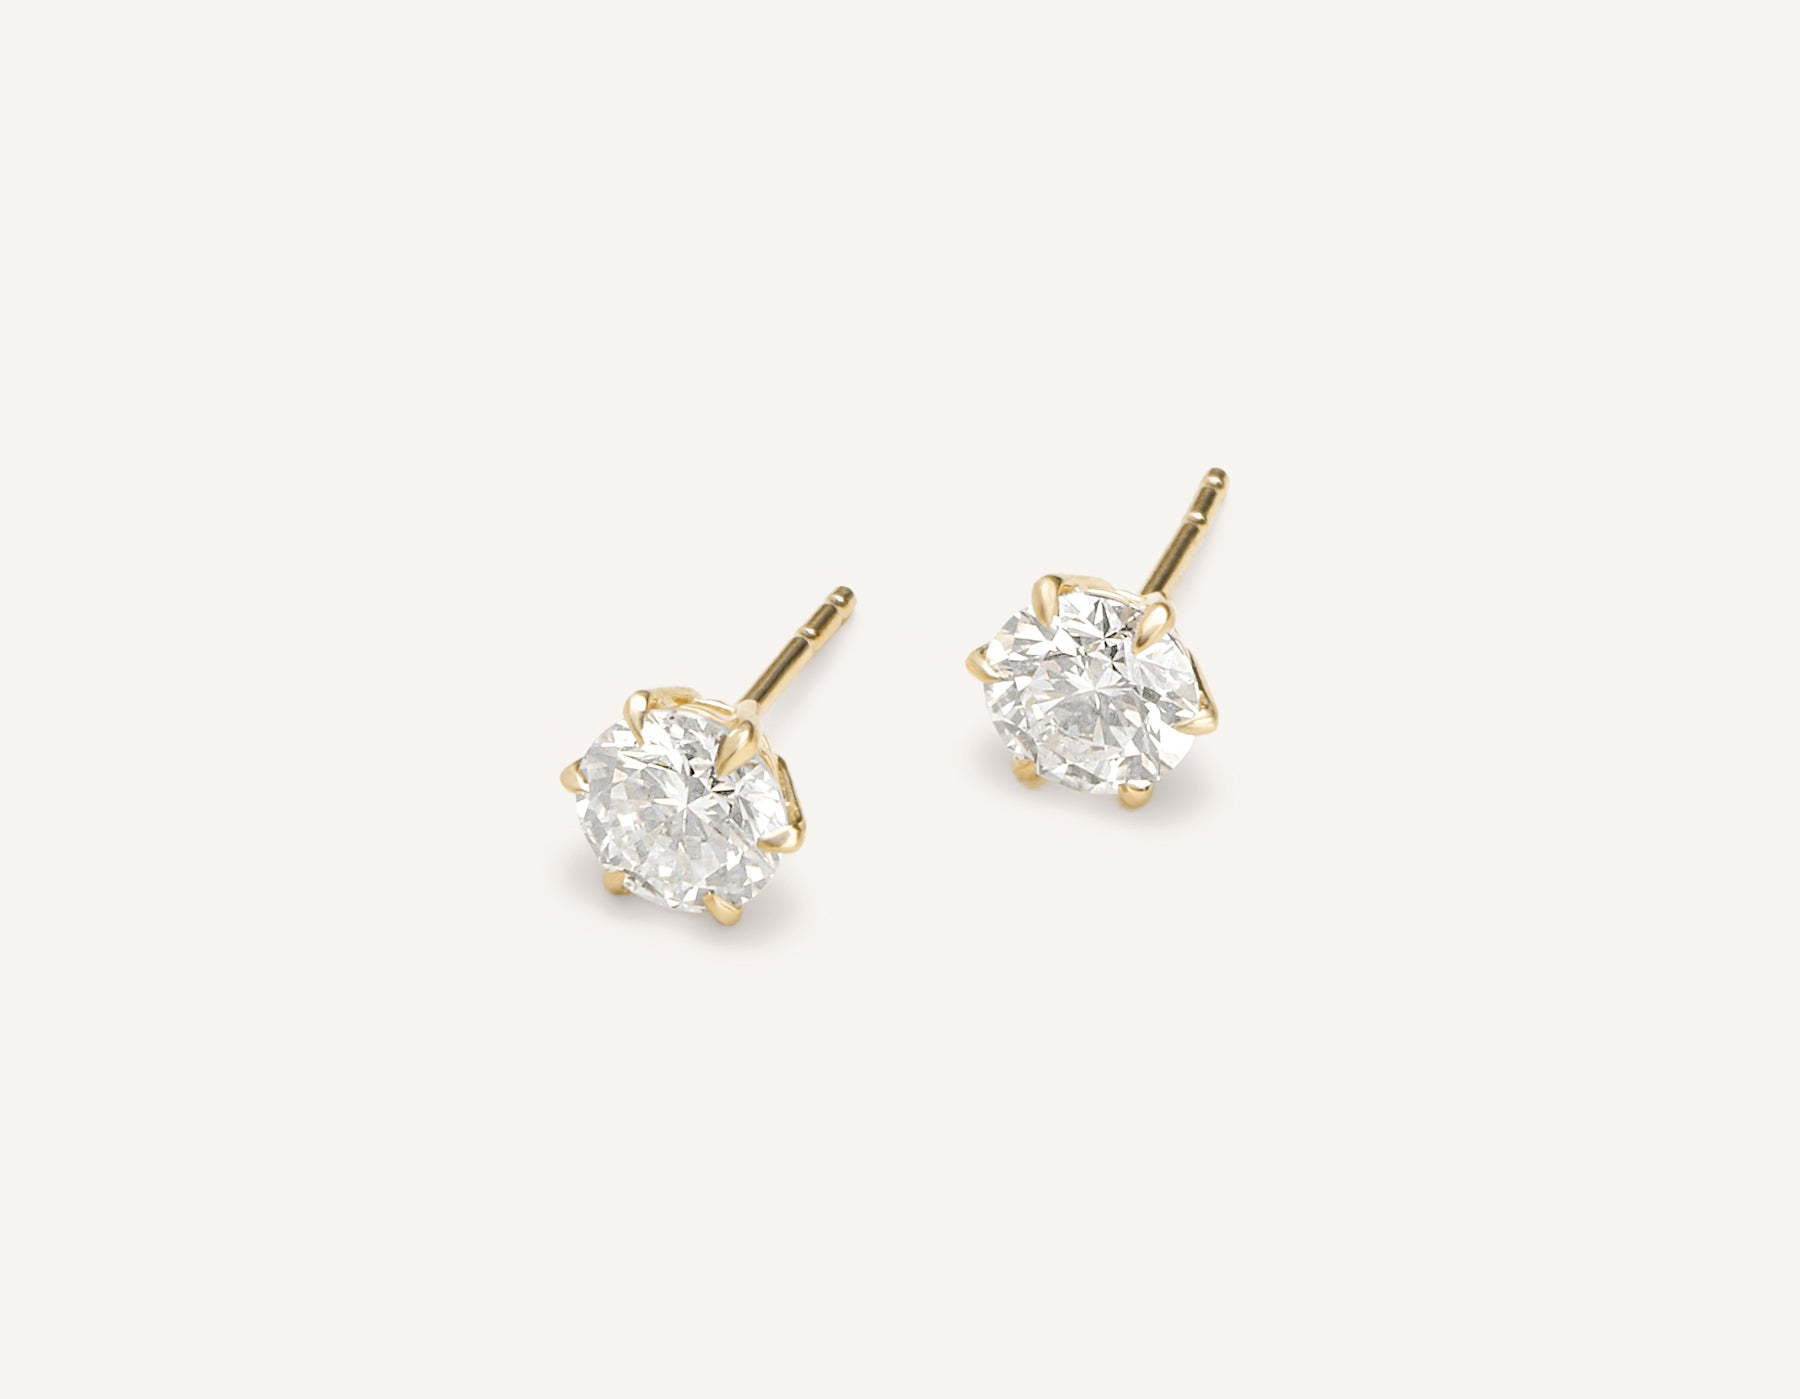 modern minimalist 18k solid gold 1.0 ct Round Brilliant Studs diamond earrings by Vrai & Oro, 18K Yellow Gold